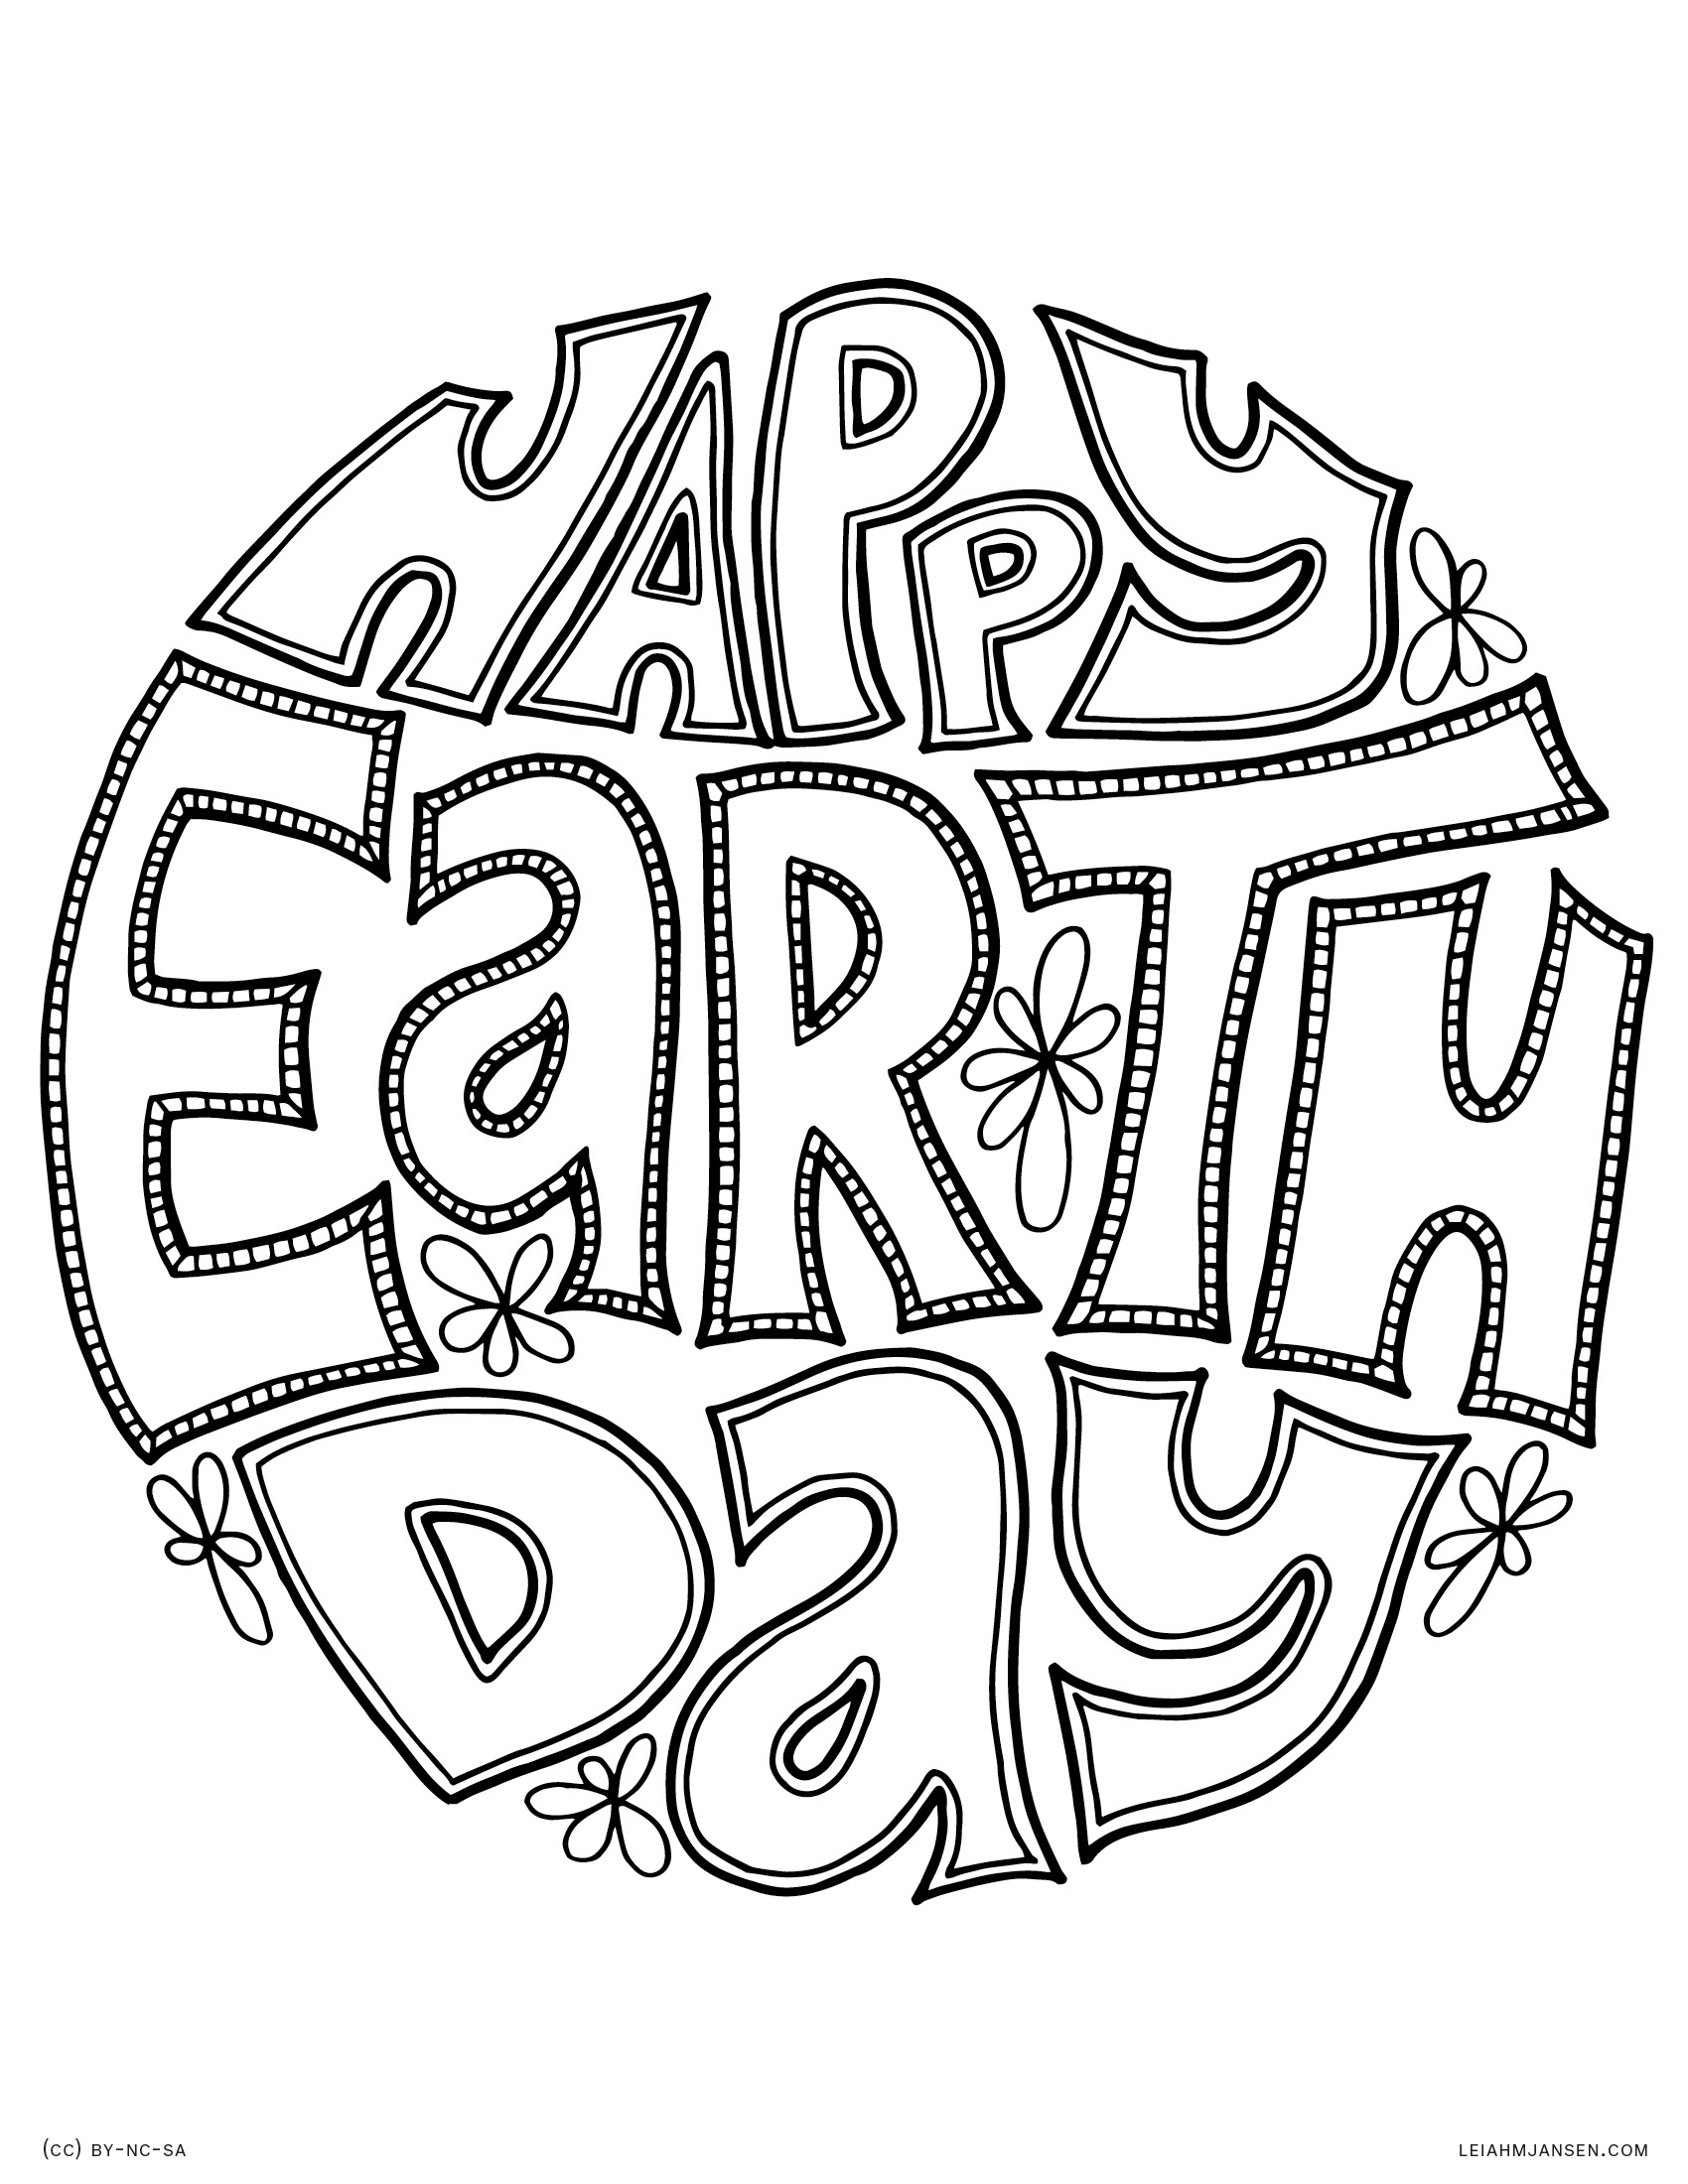 Free coloring pages for earth day - Happy Earth Day Retro Lettering Earth Globe Free Printable Coloring Page For Adults And